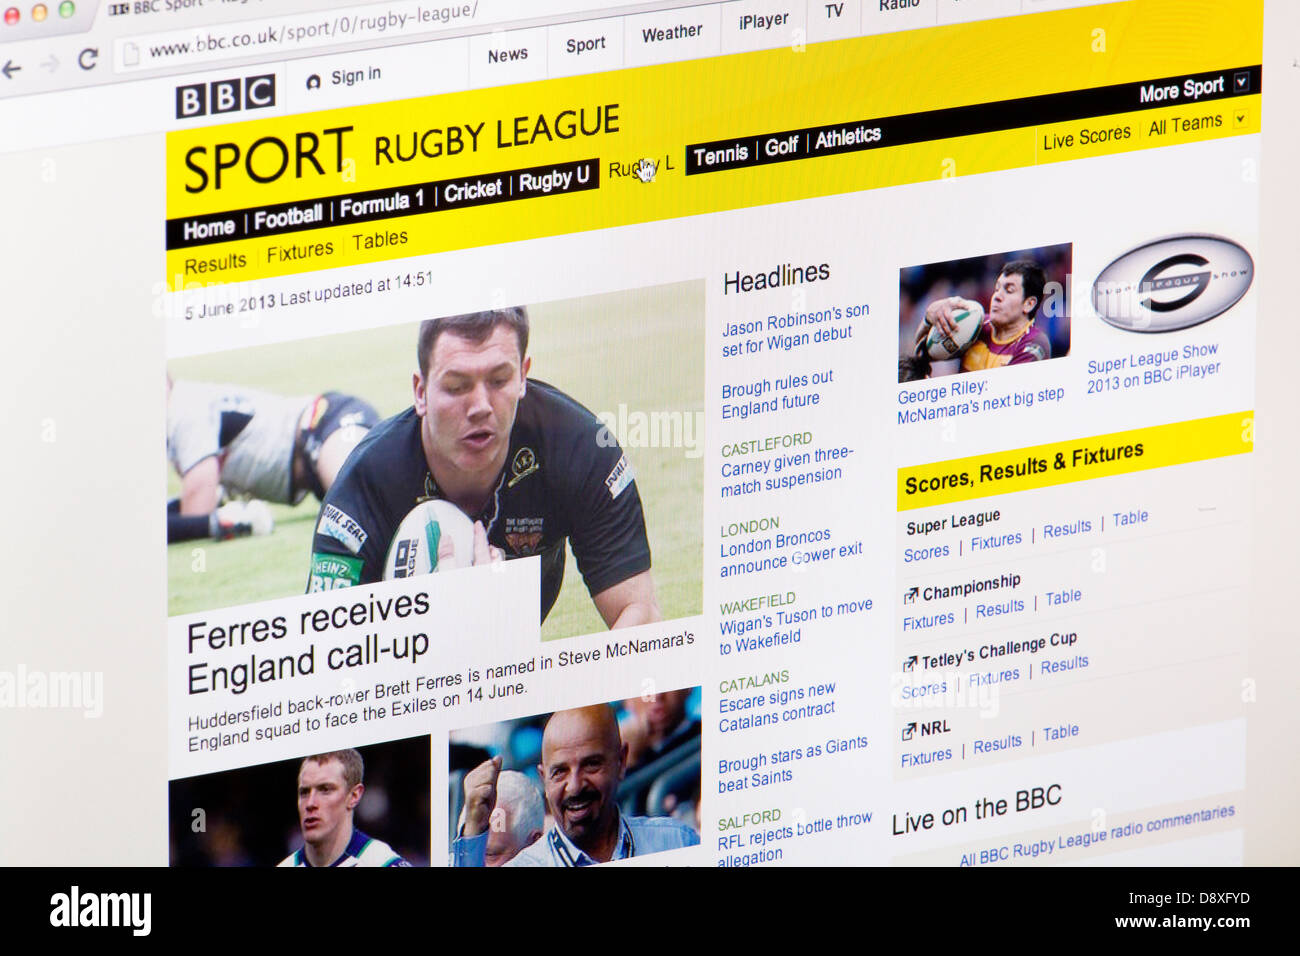 BBC Sport Rugby League home page Website or web page on a laptop screen or computer monitor - Stock Image